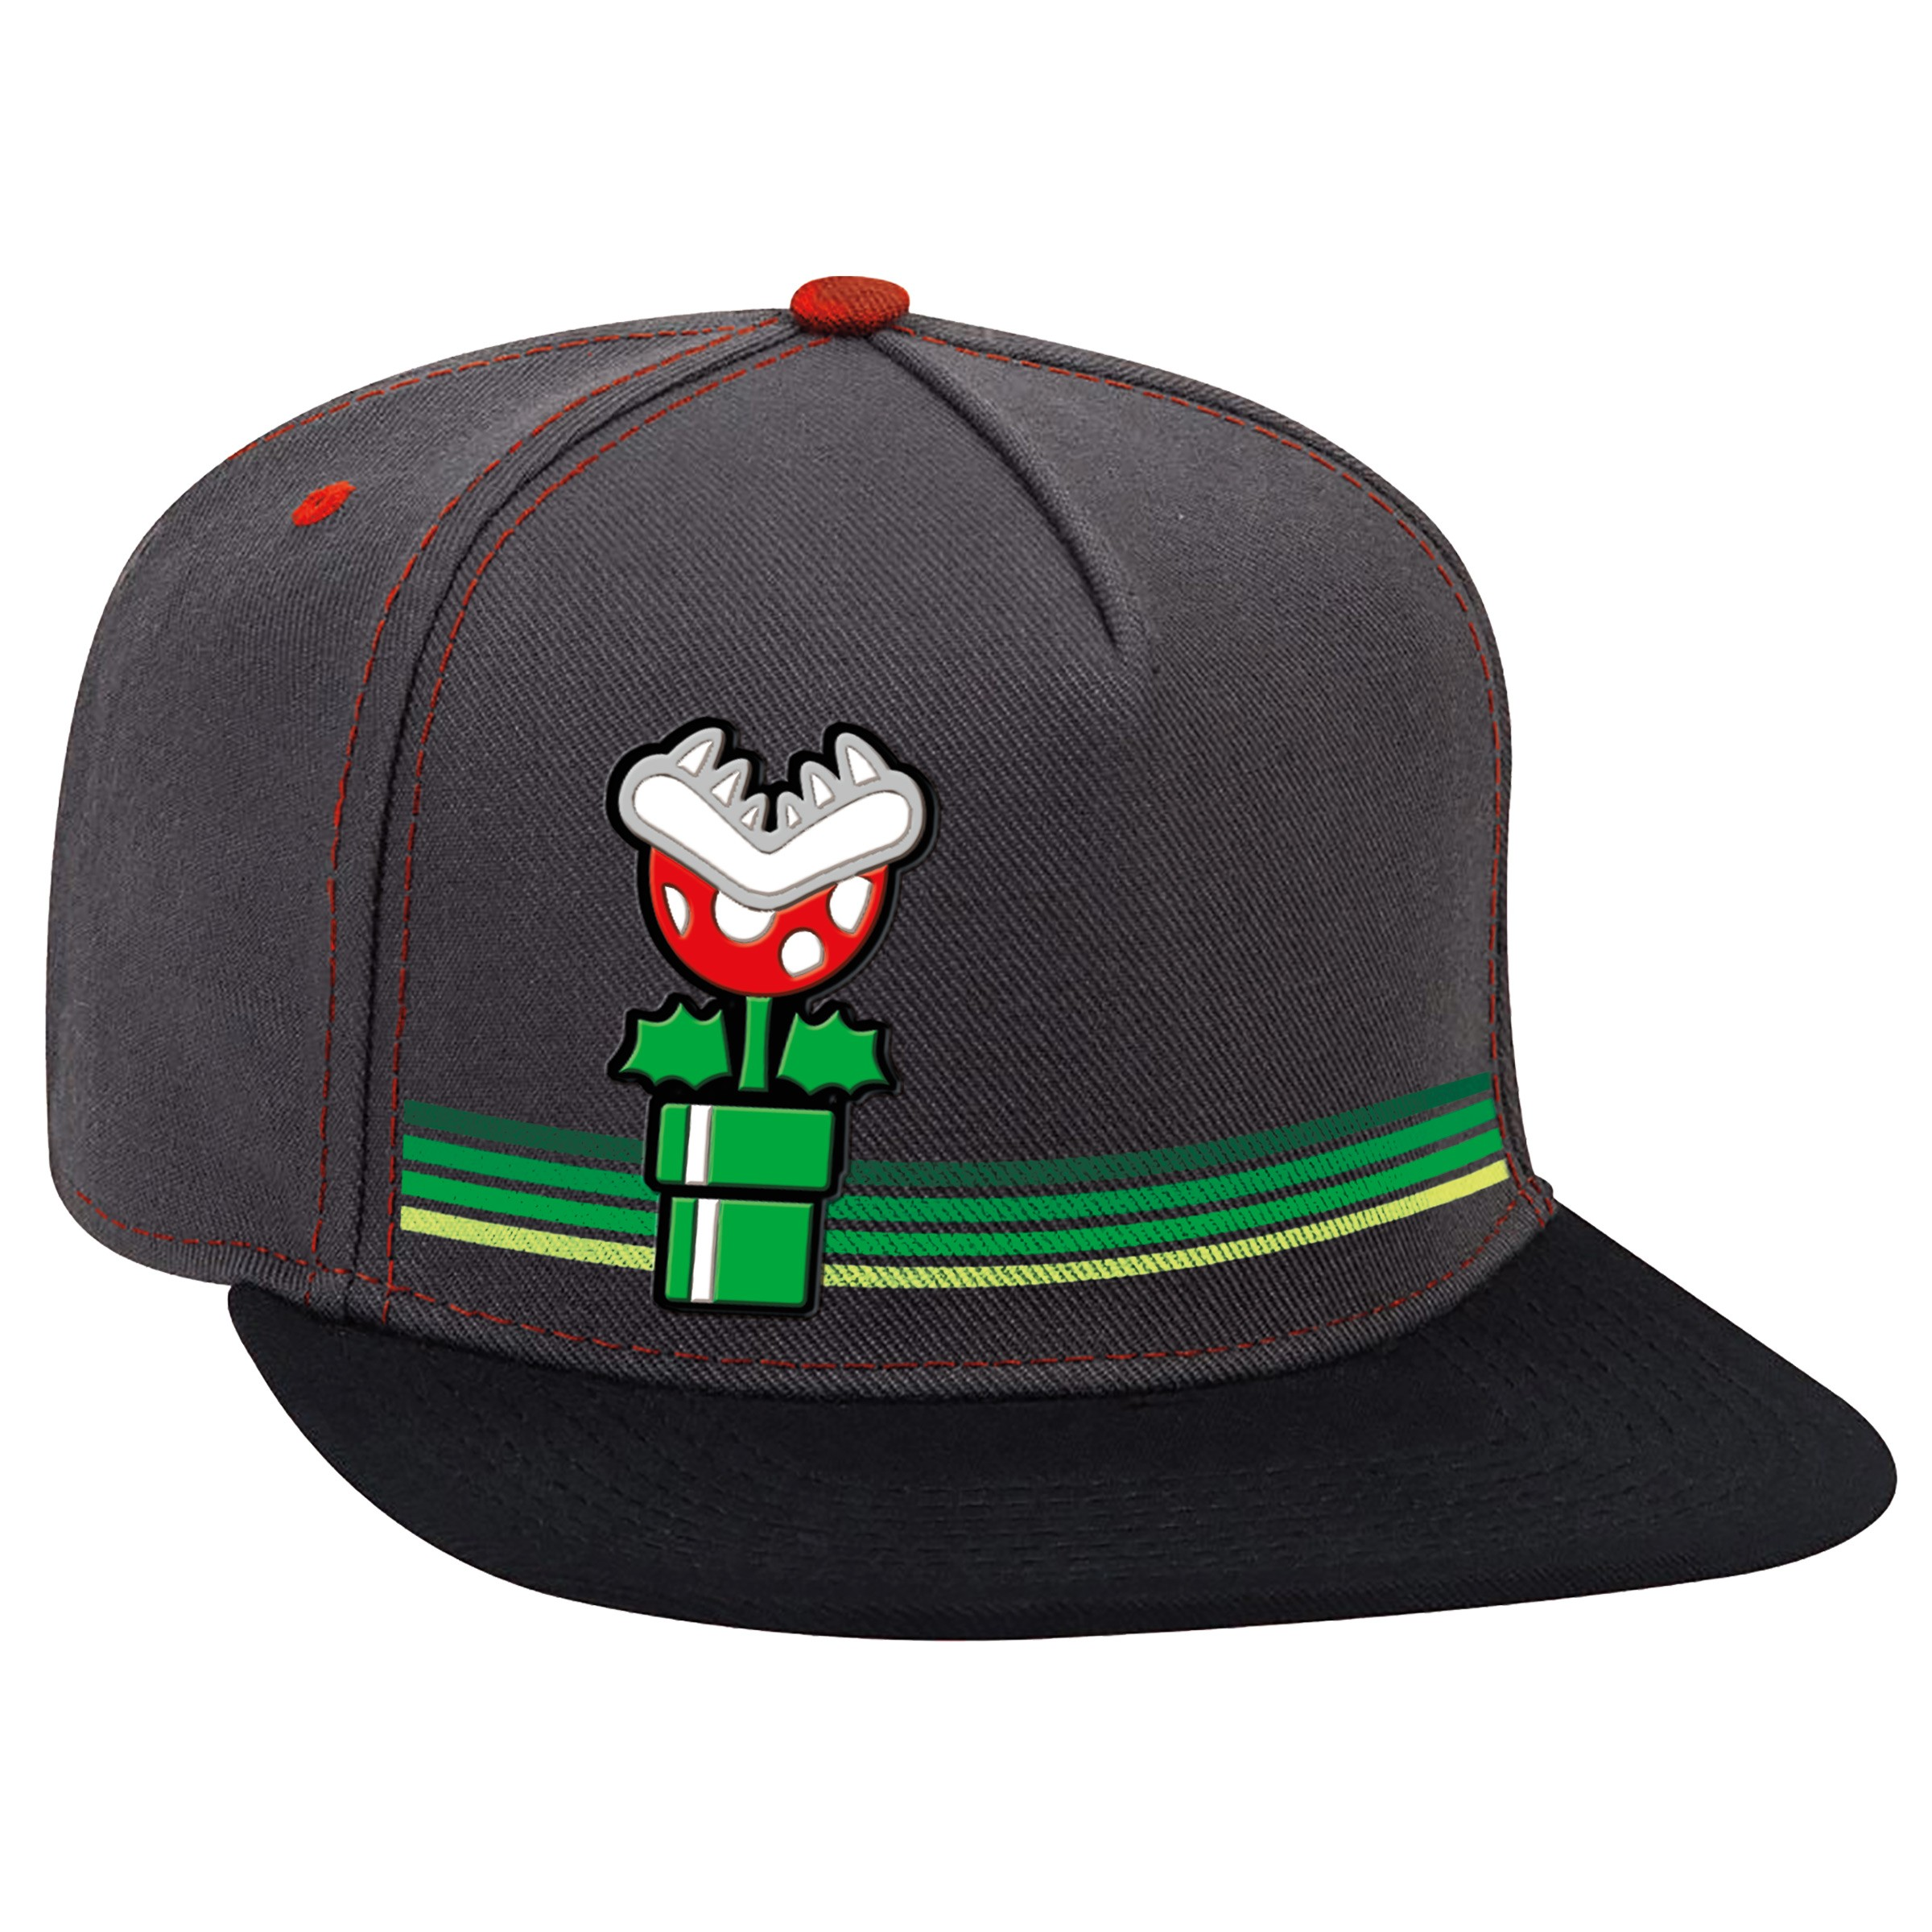 "Super Mario™ ""Piranha Vintage"" Flat Bill Hat - Officially Licensed by Nintendo"